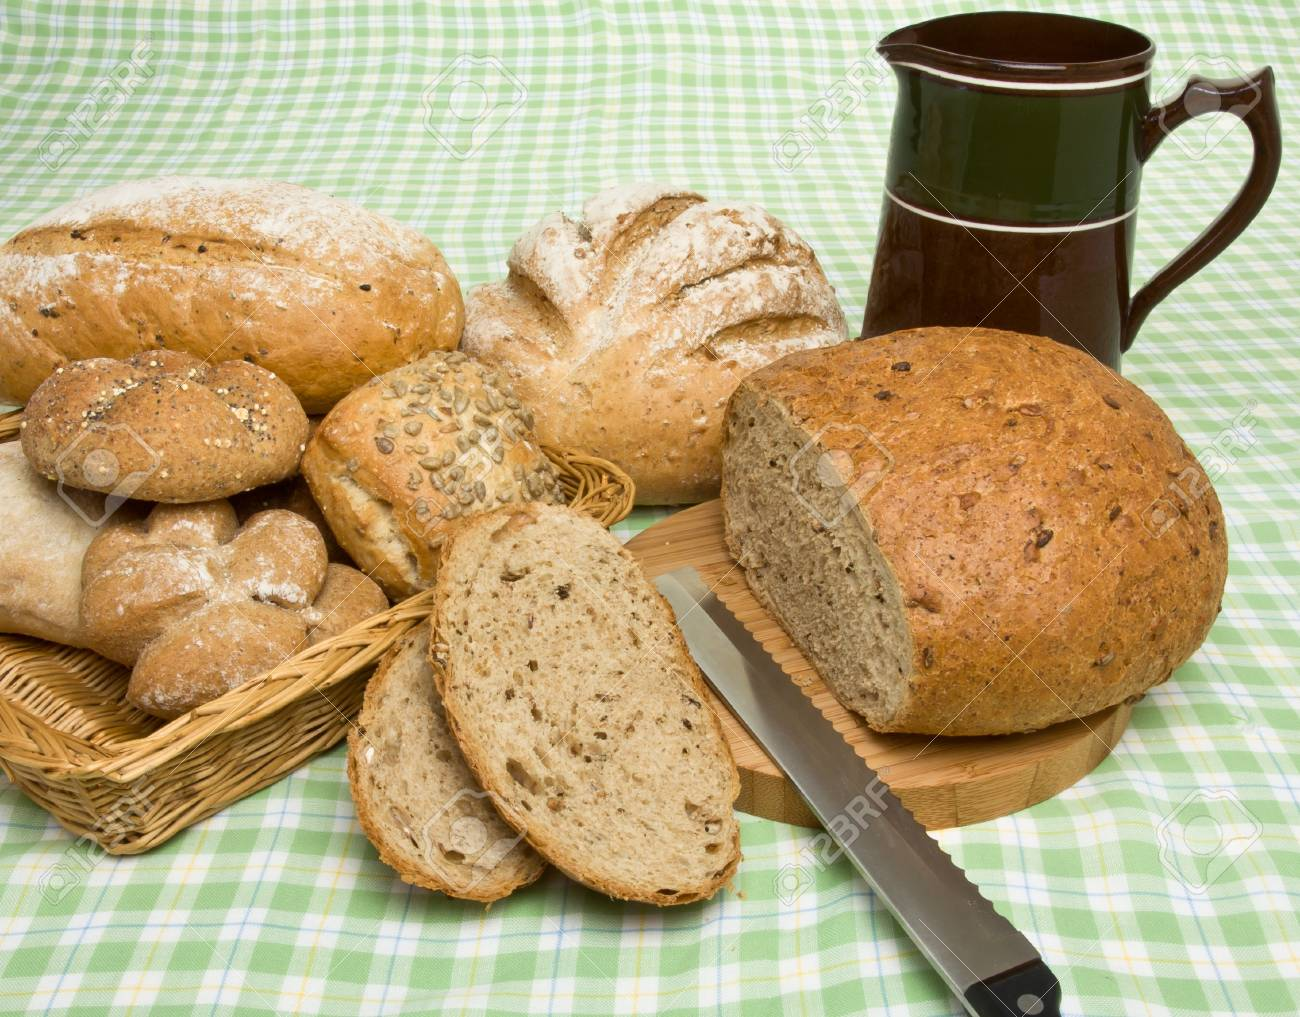 A selection of rustic organic handmade gourmet breads. Stock Photo - 7987925